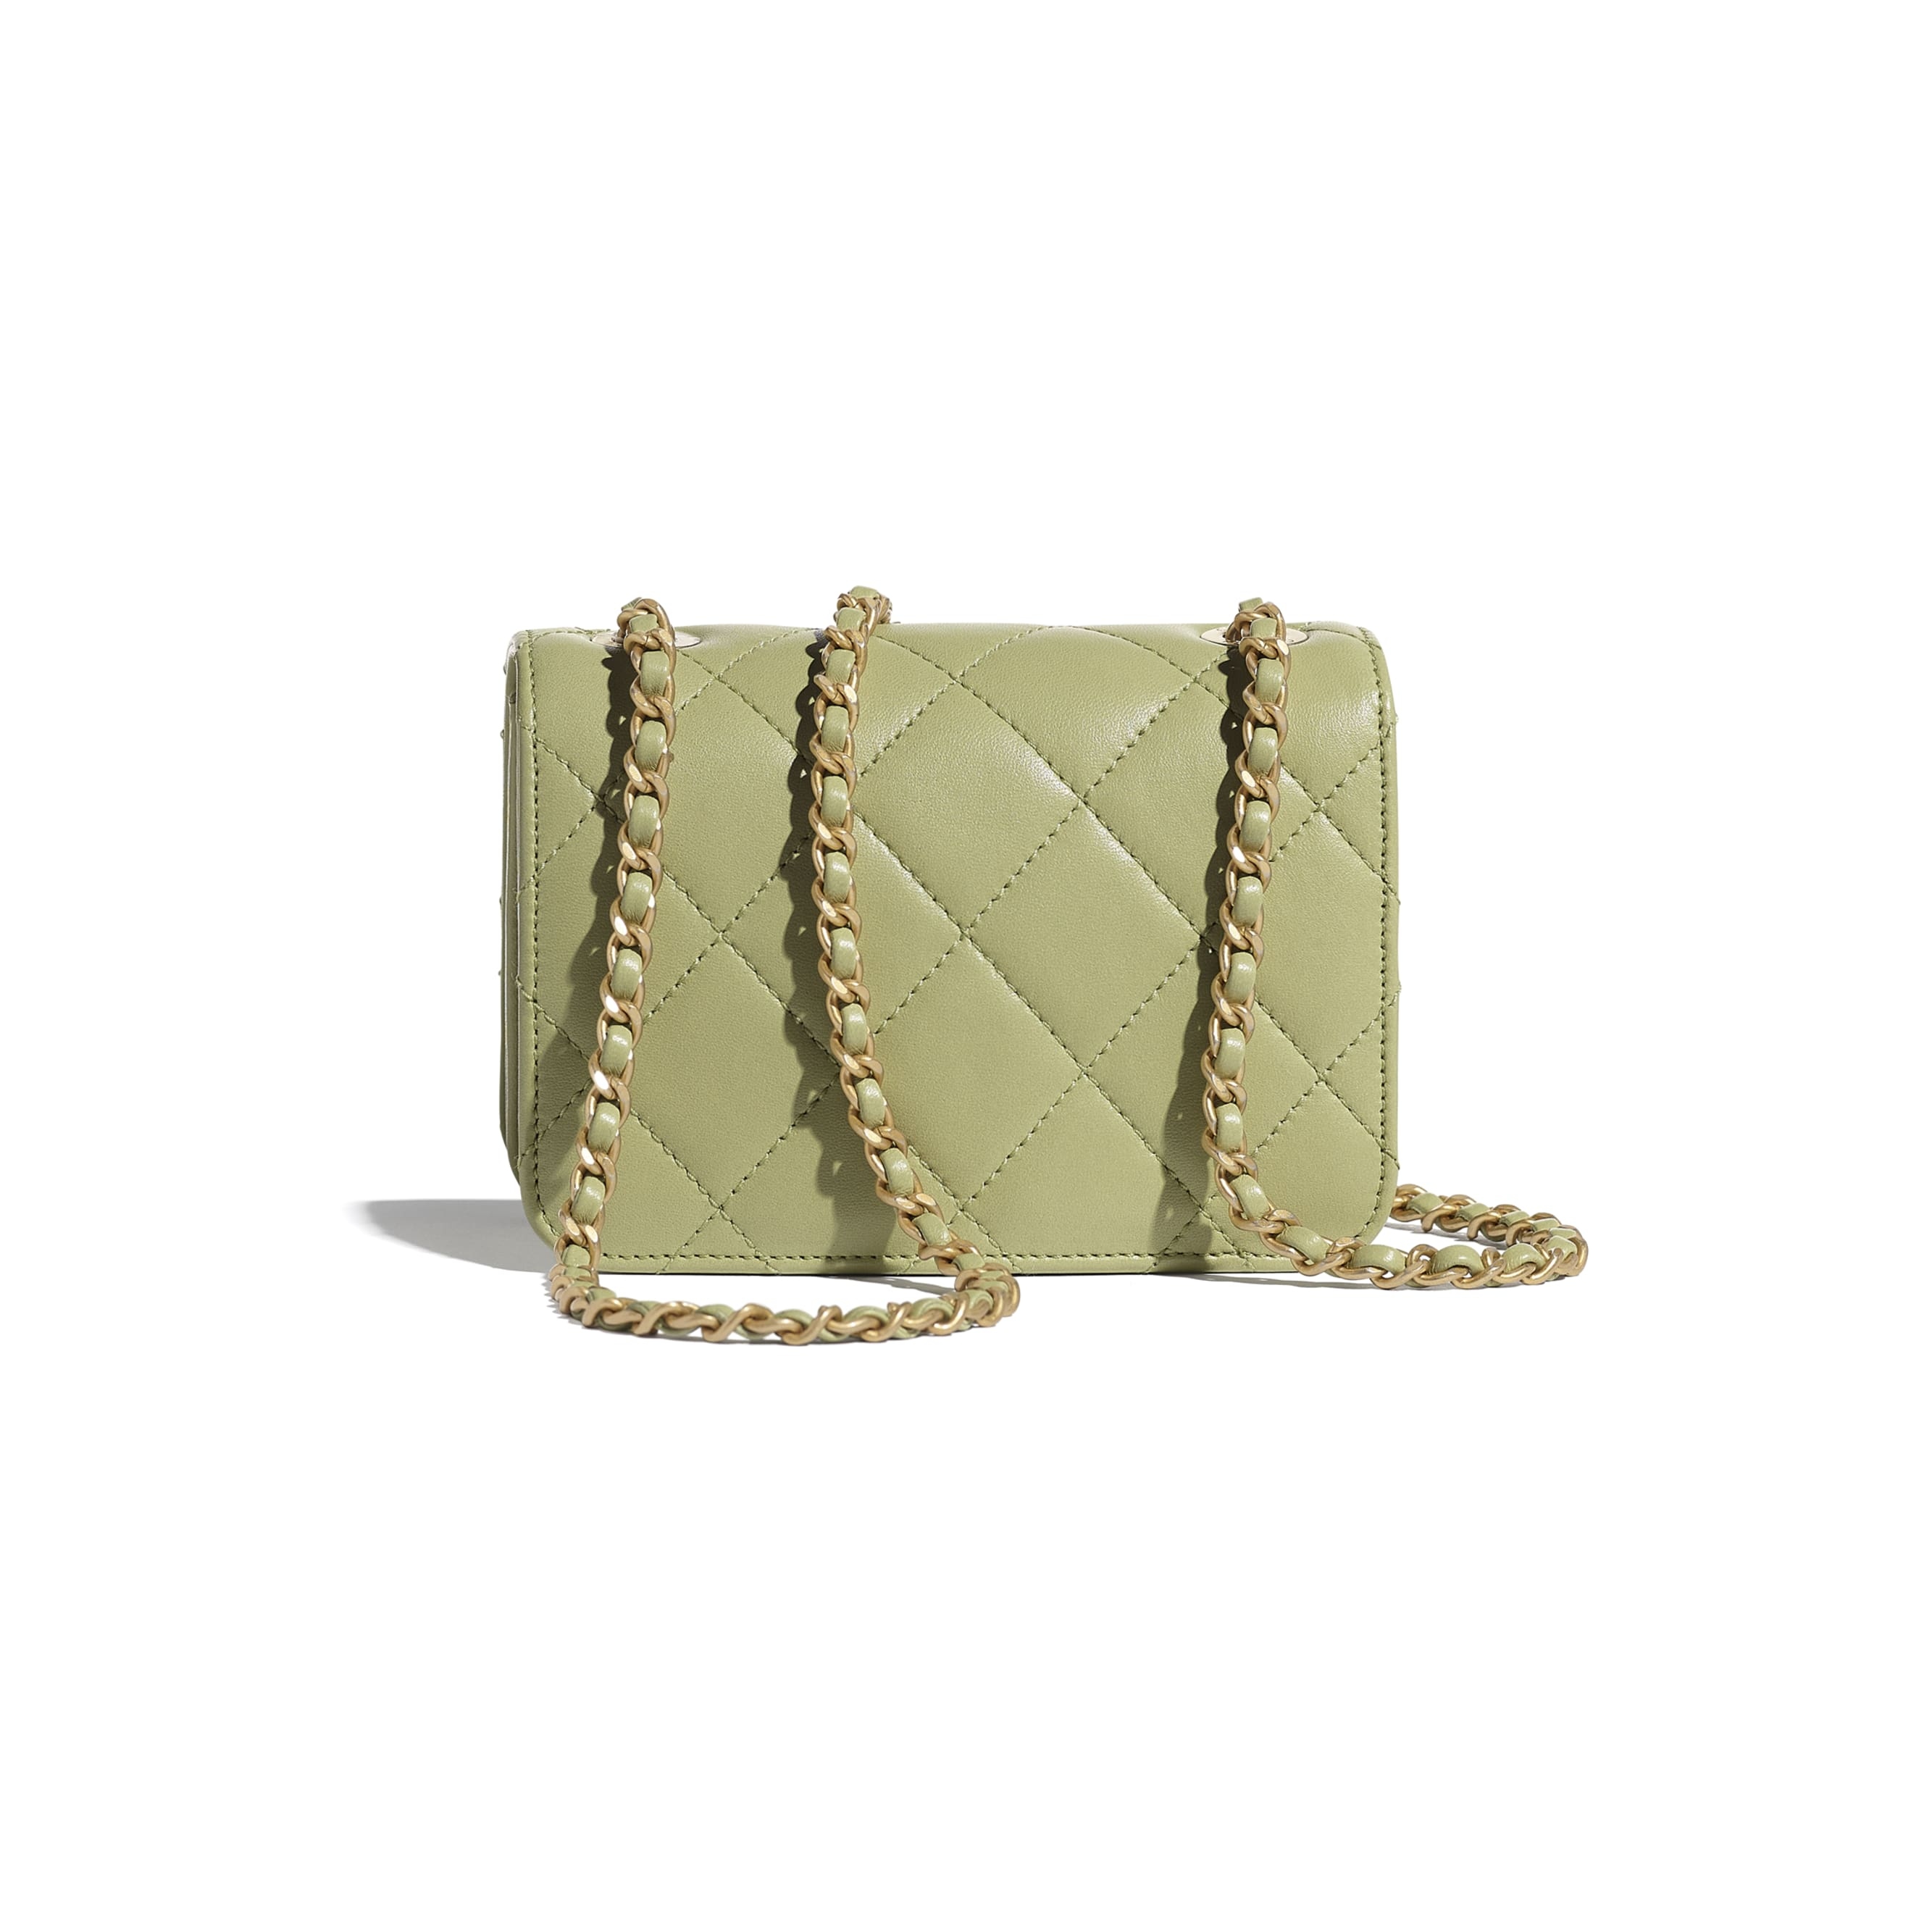 Small Flap Bag - Green - Calfskin, Crystal Pearls, Resin & Gold-Tone Metal - CHANEL - Alternative view - see standard sized version